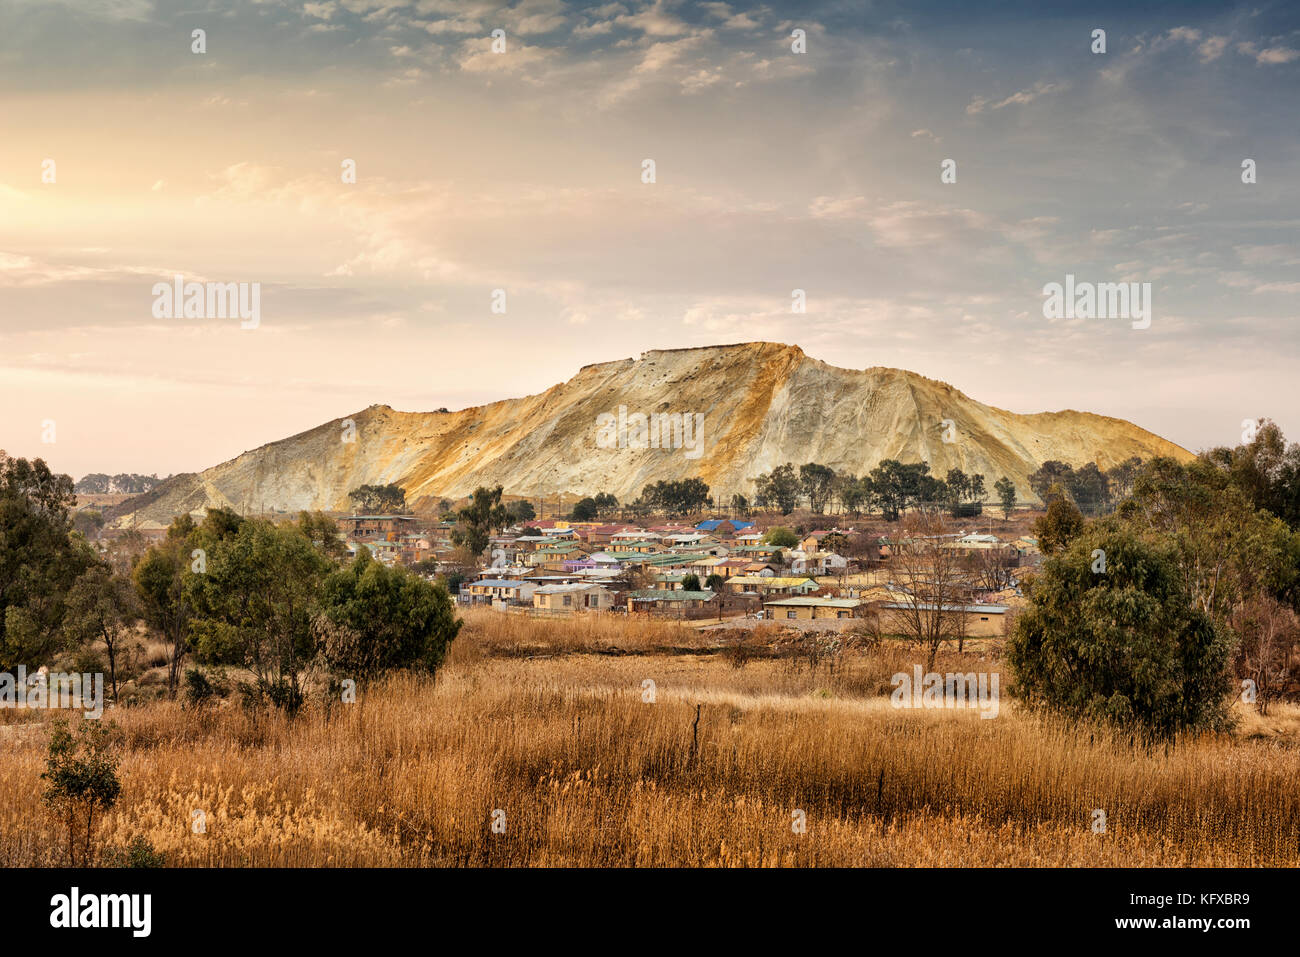 Shacks built in a mine dump from a distance, Johannesburg - Stock Image